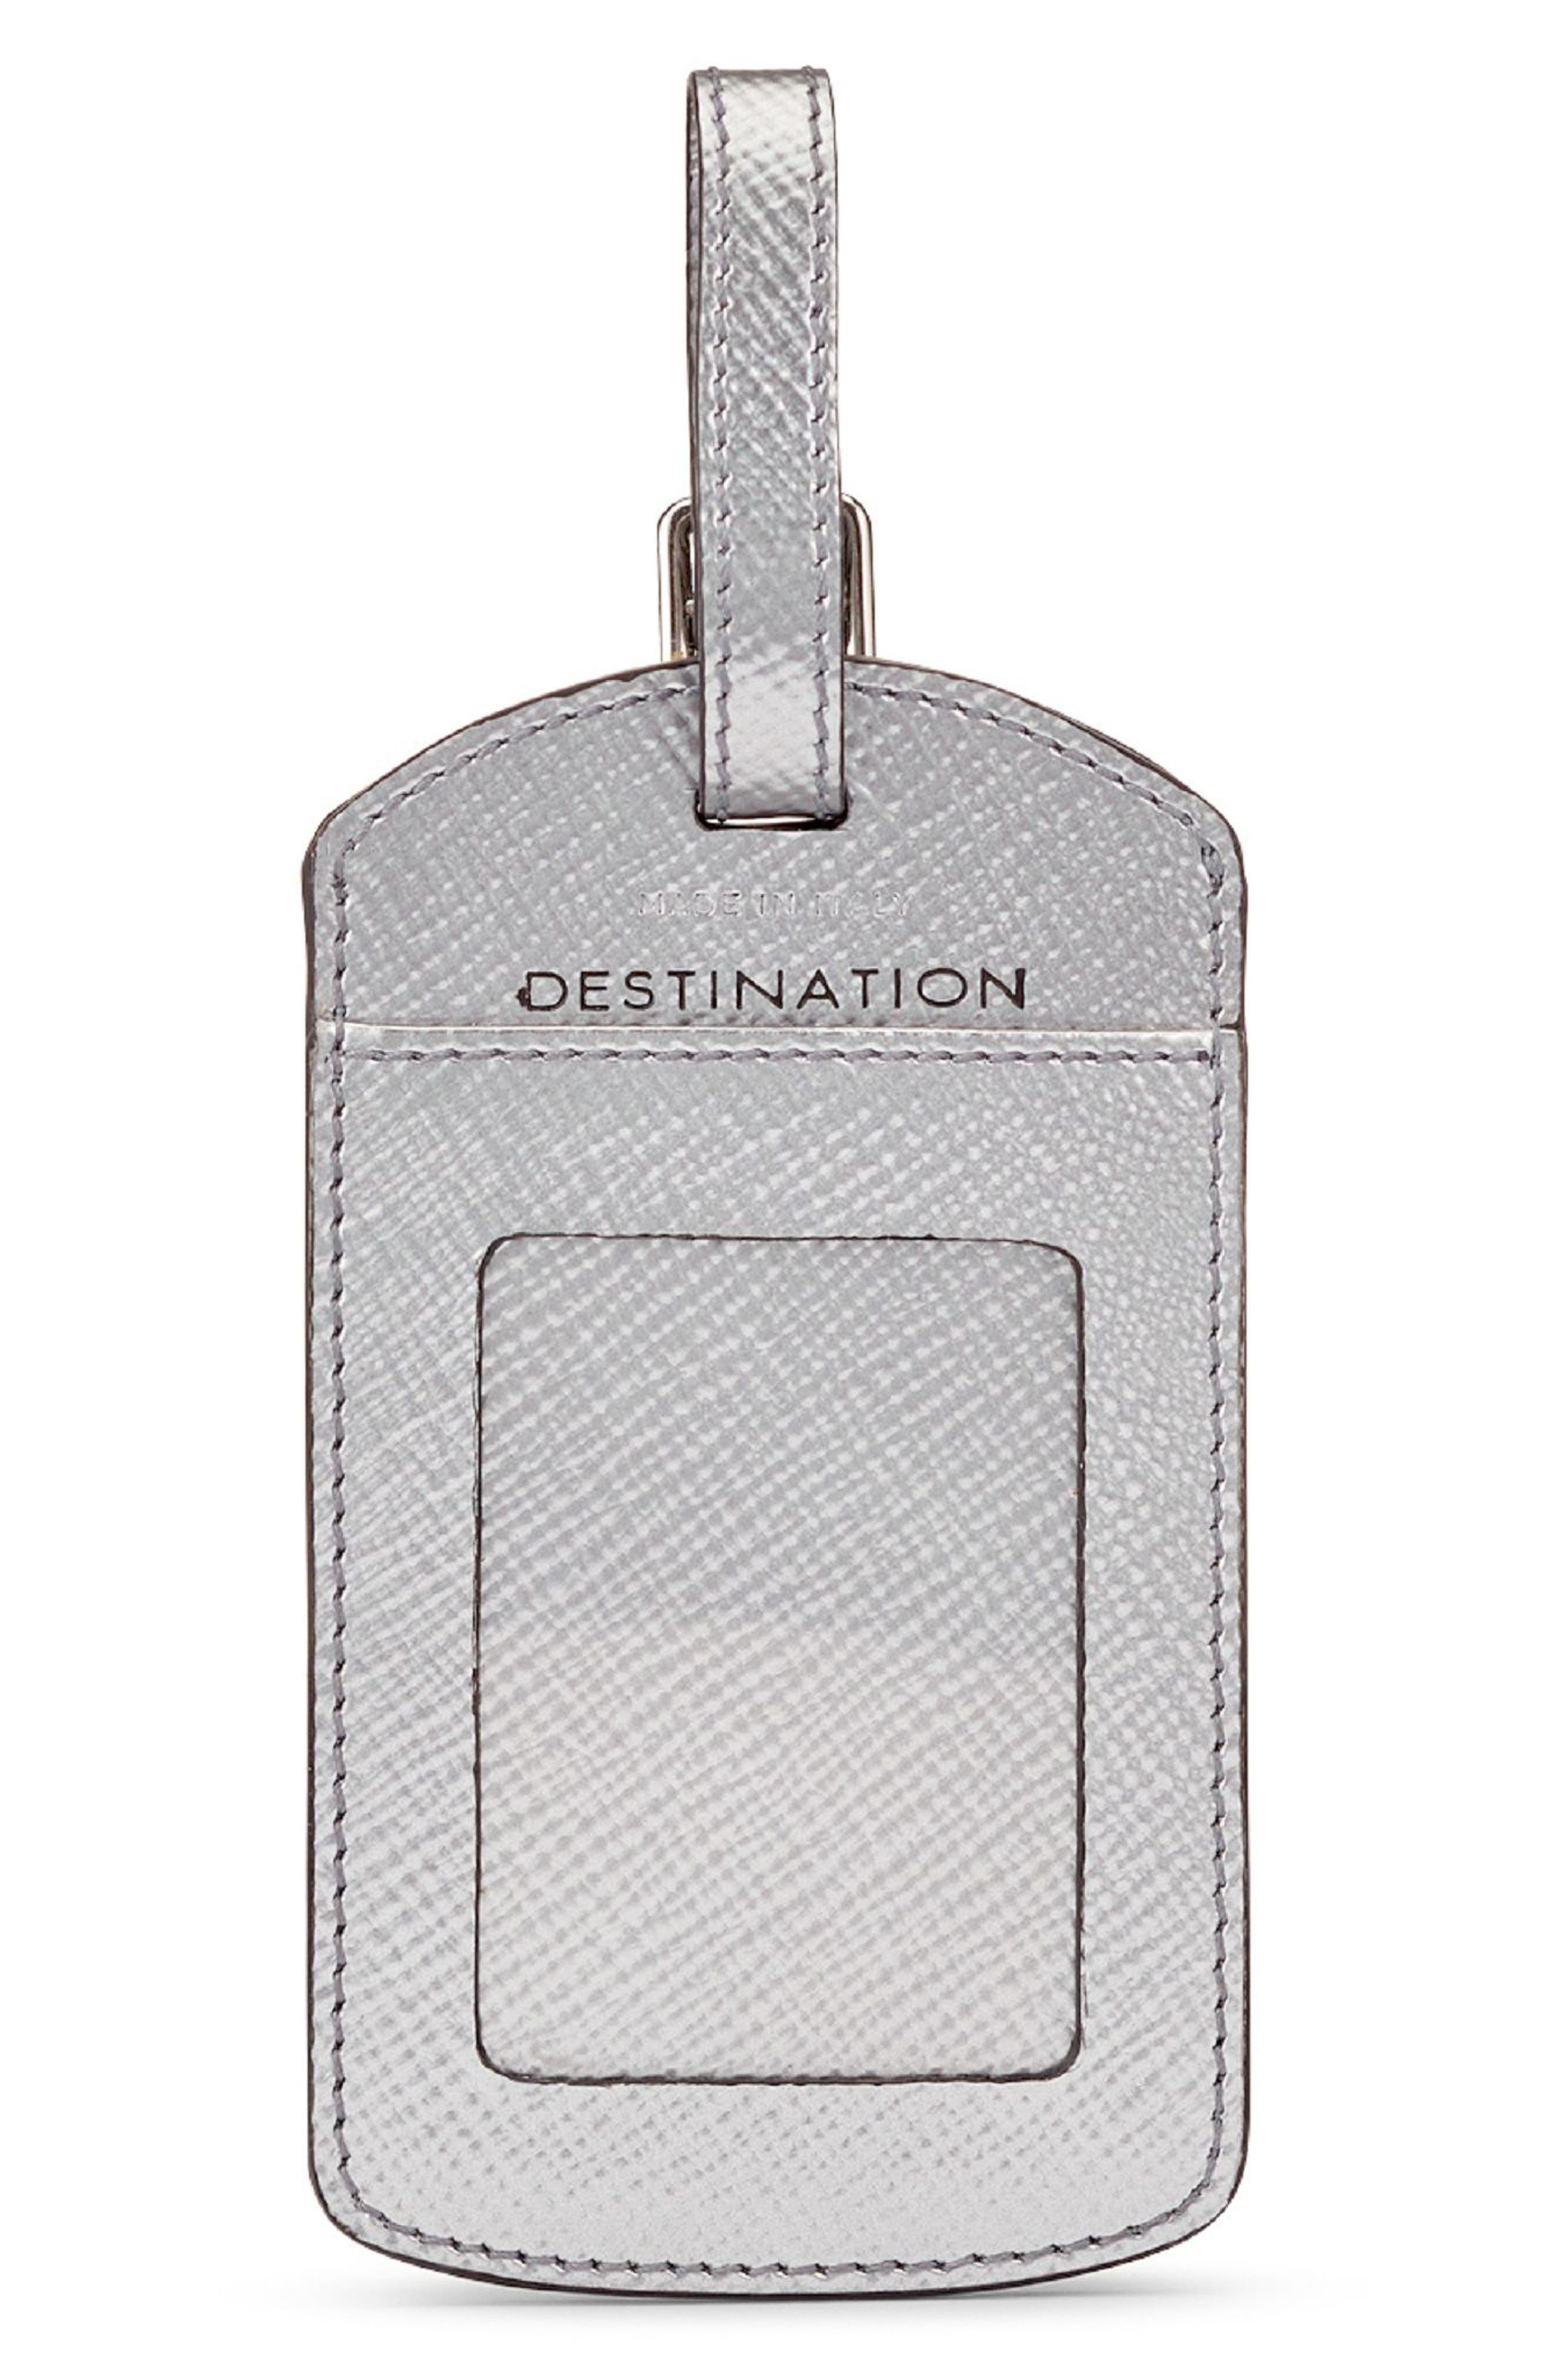 Home/Destination Calfskin Leather Luggage Tag,                             Alternate thumbnail 2, color,                             Silver